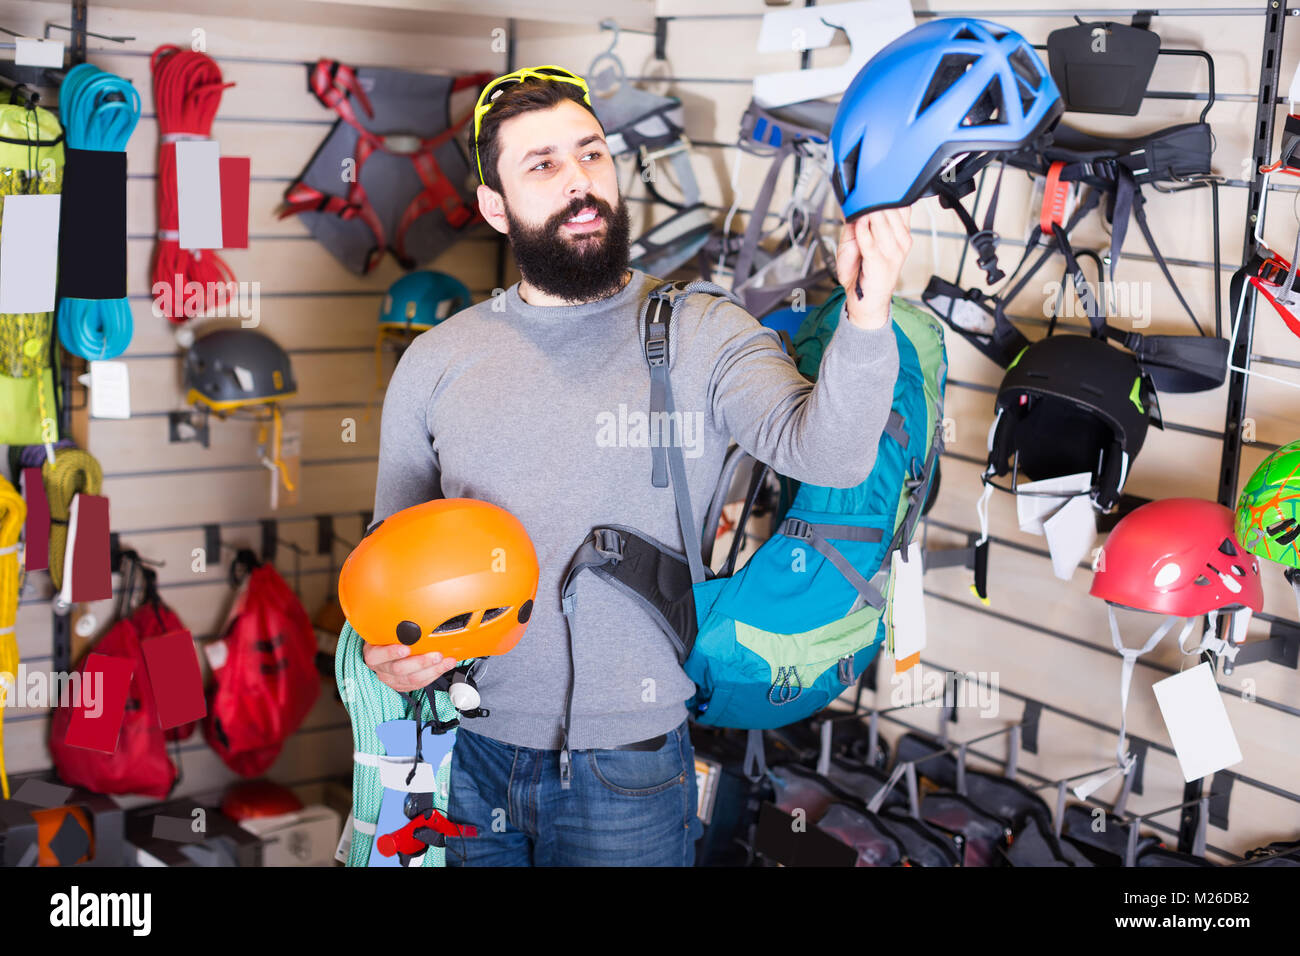 Sports Equipment And Variety Stock Photos & Sports ...